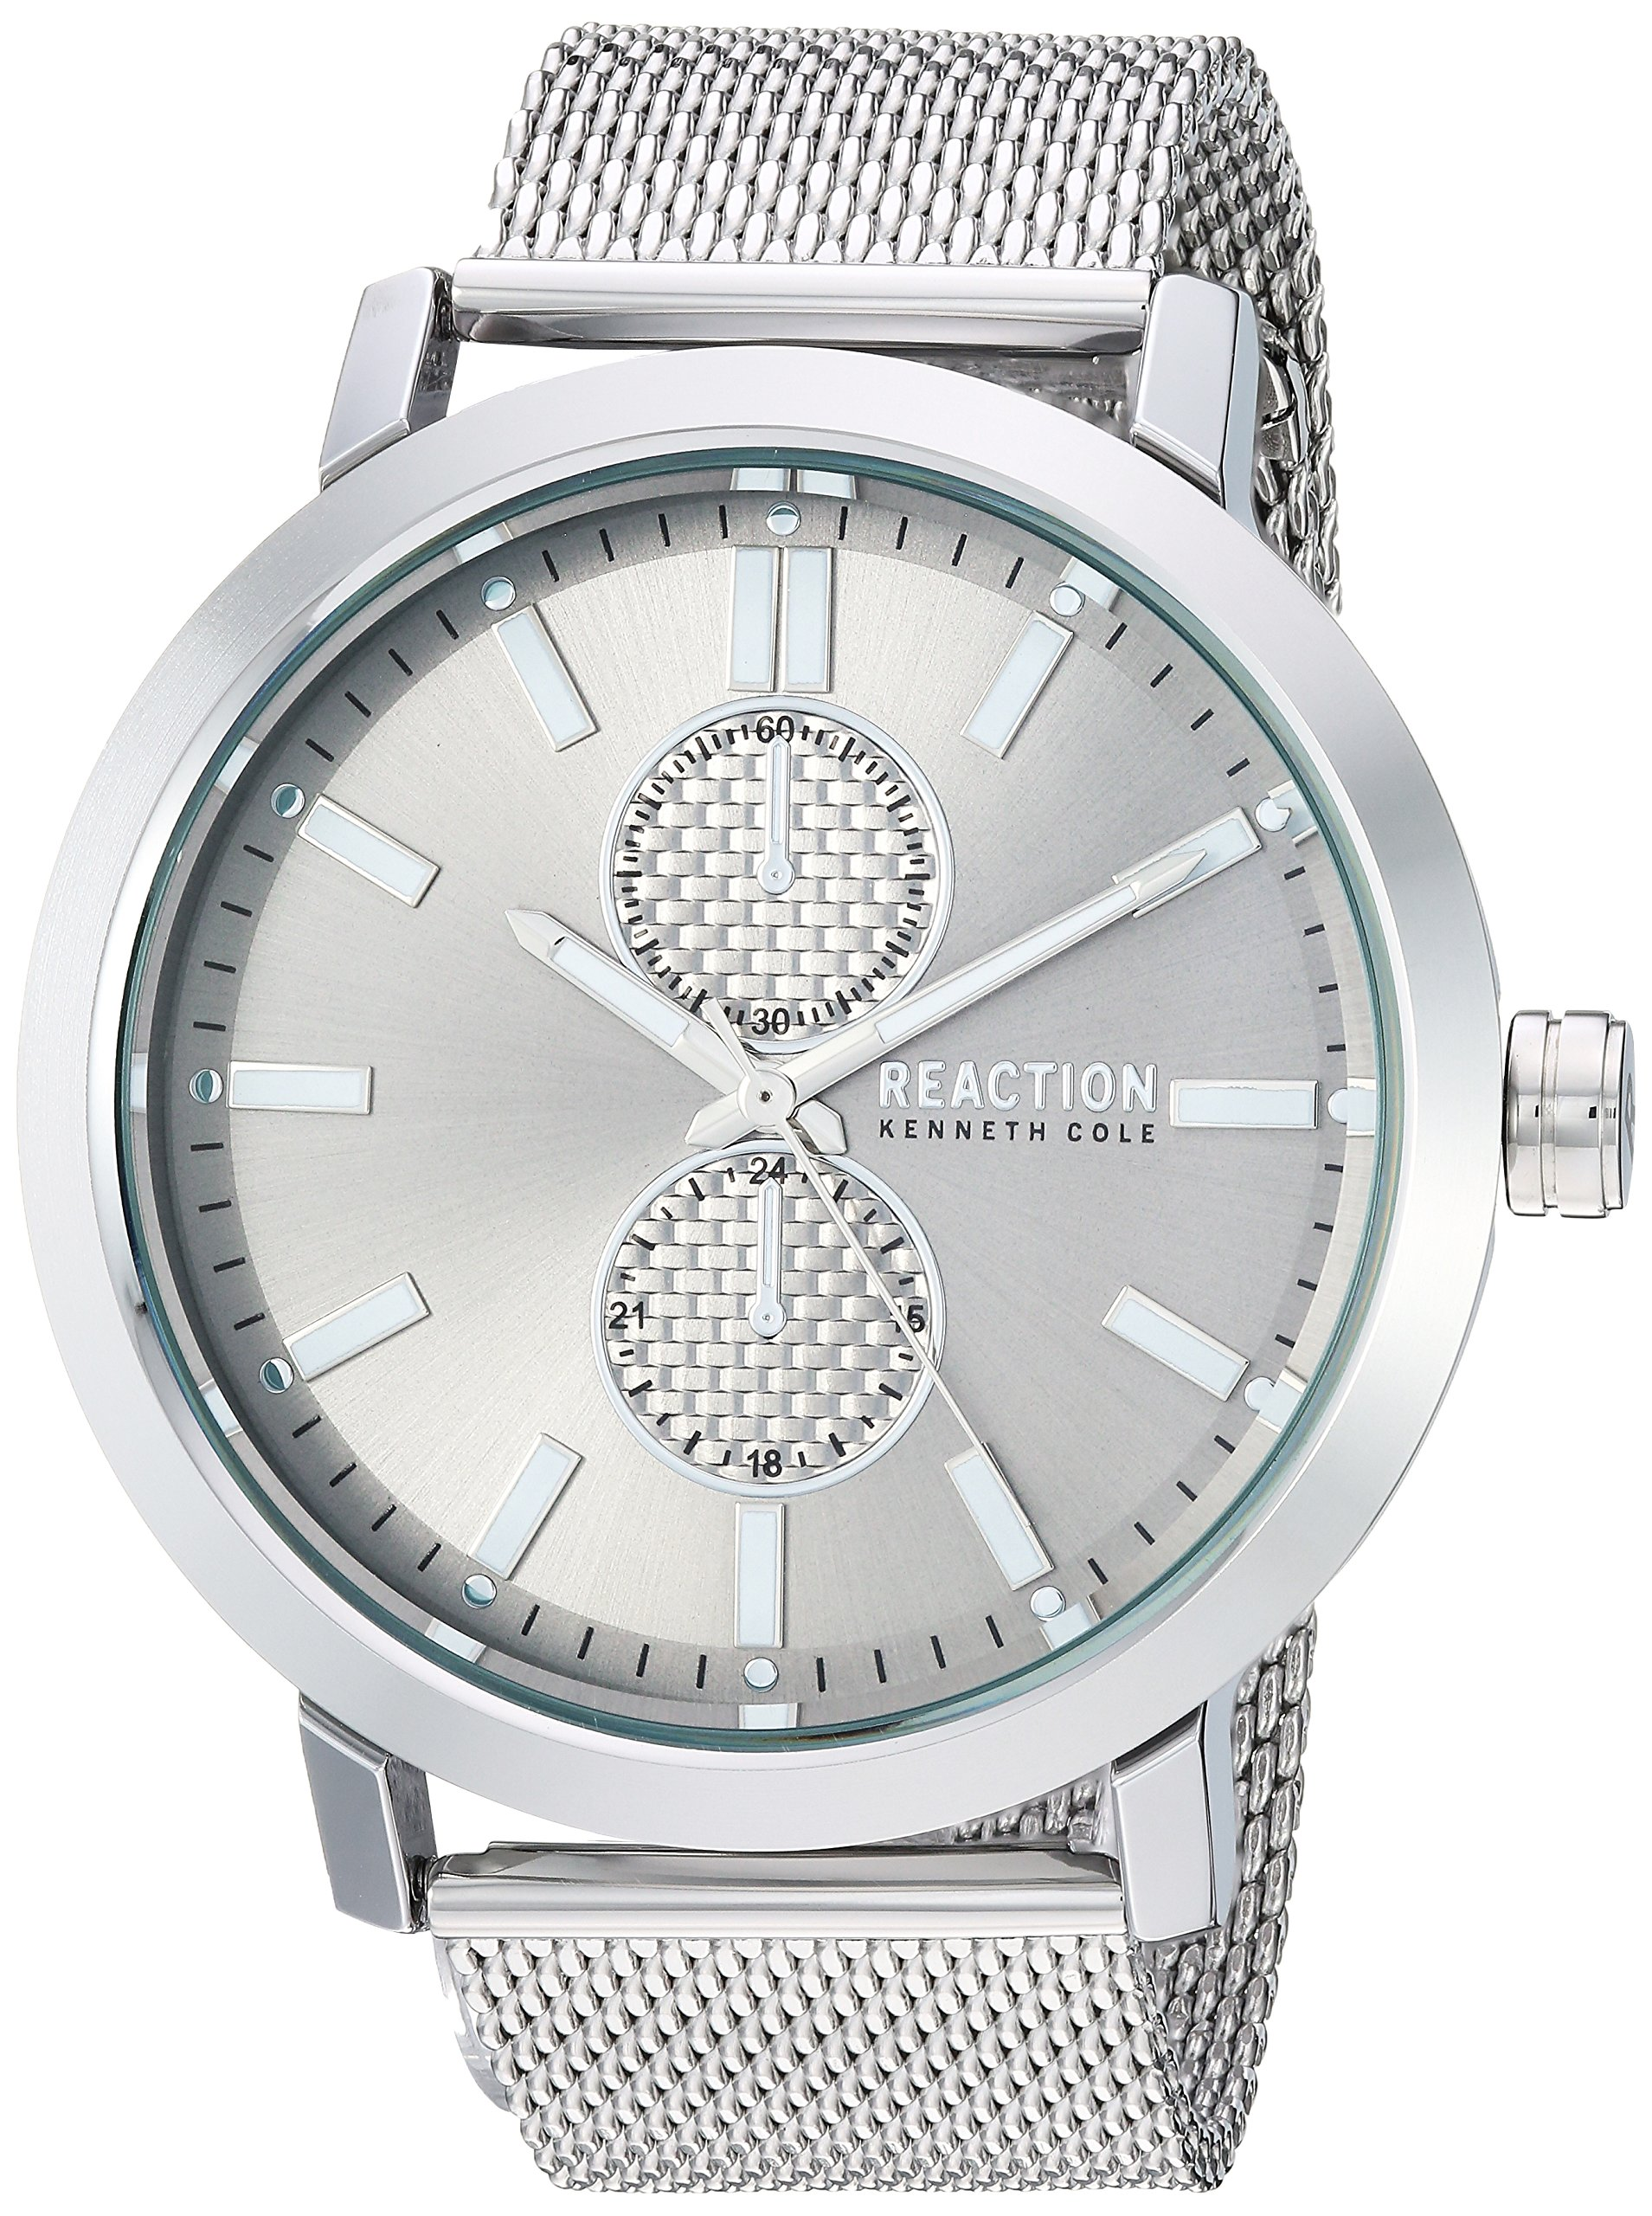 Kenneth Cole New York Male Quartz Watch by Kenneth Cole REACTION